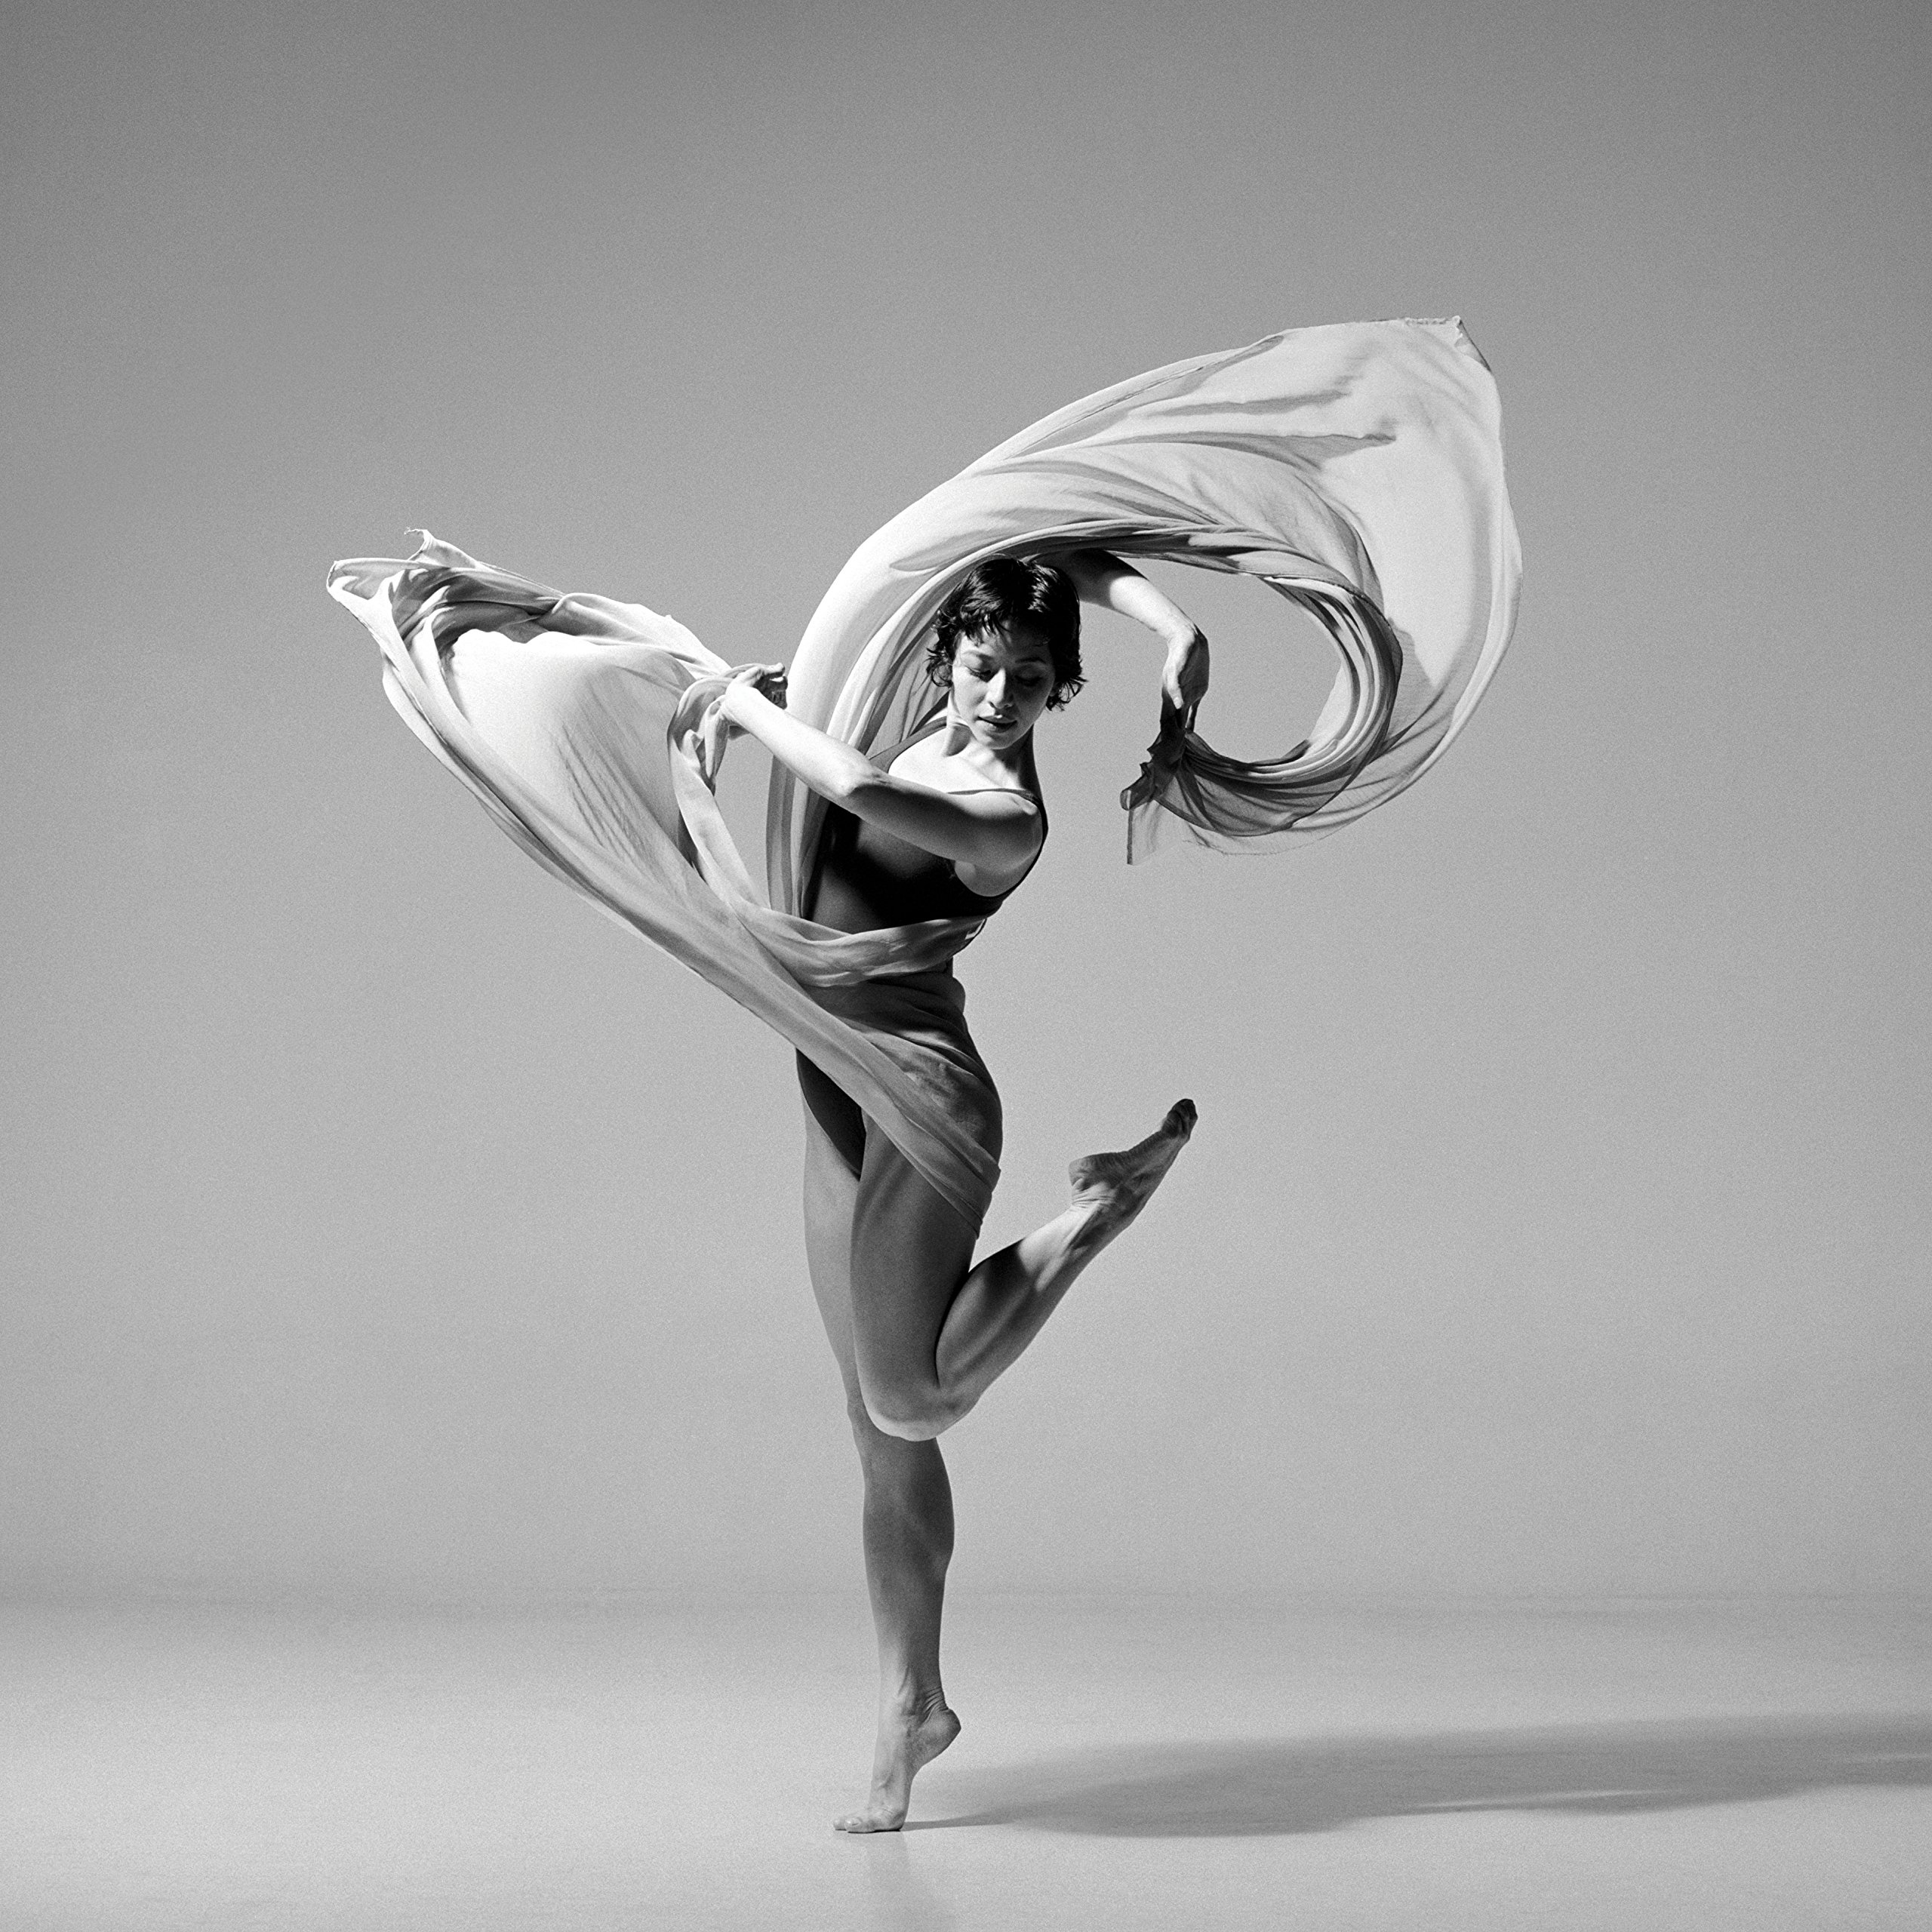 grainedephotographe-loisgreenfield11